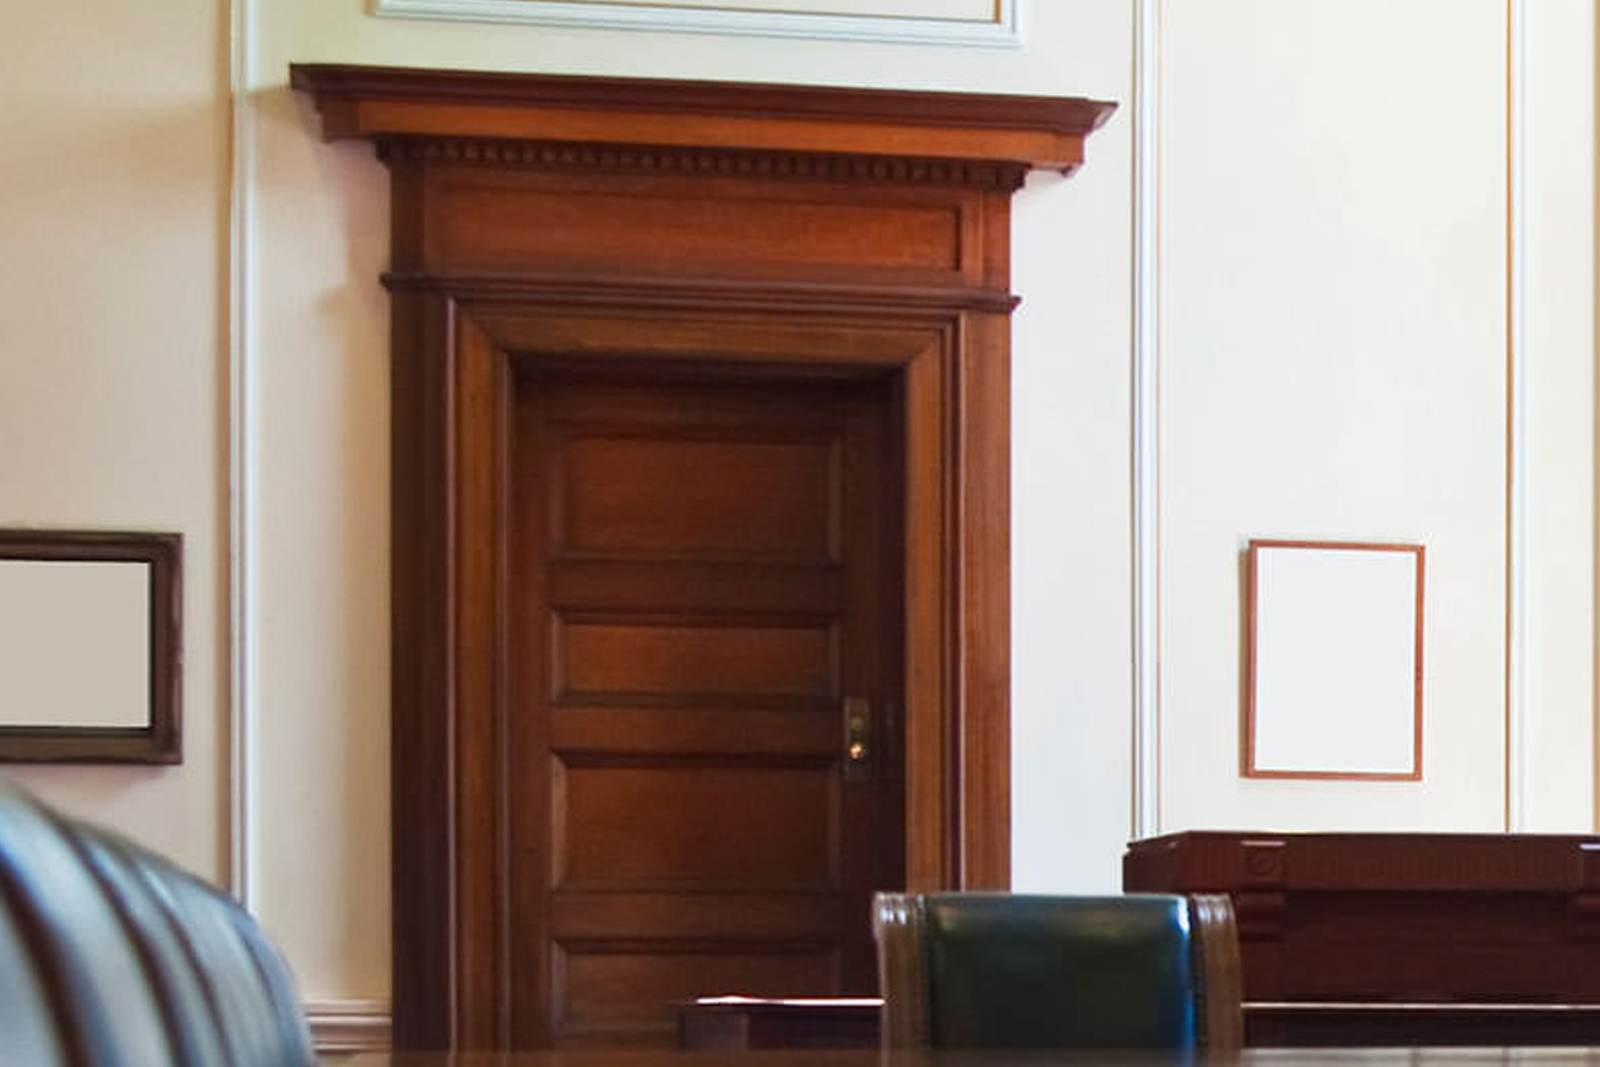 Wood fire-rated door frame in office conference room